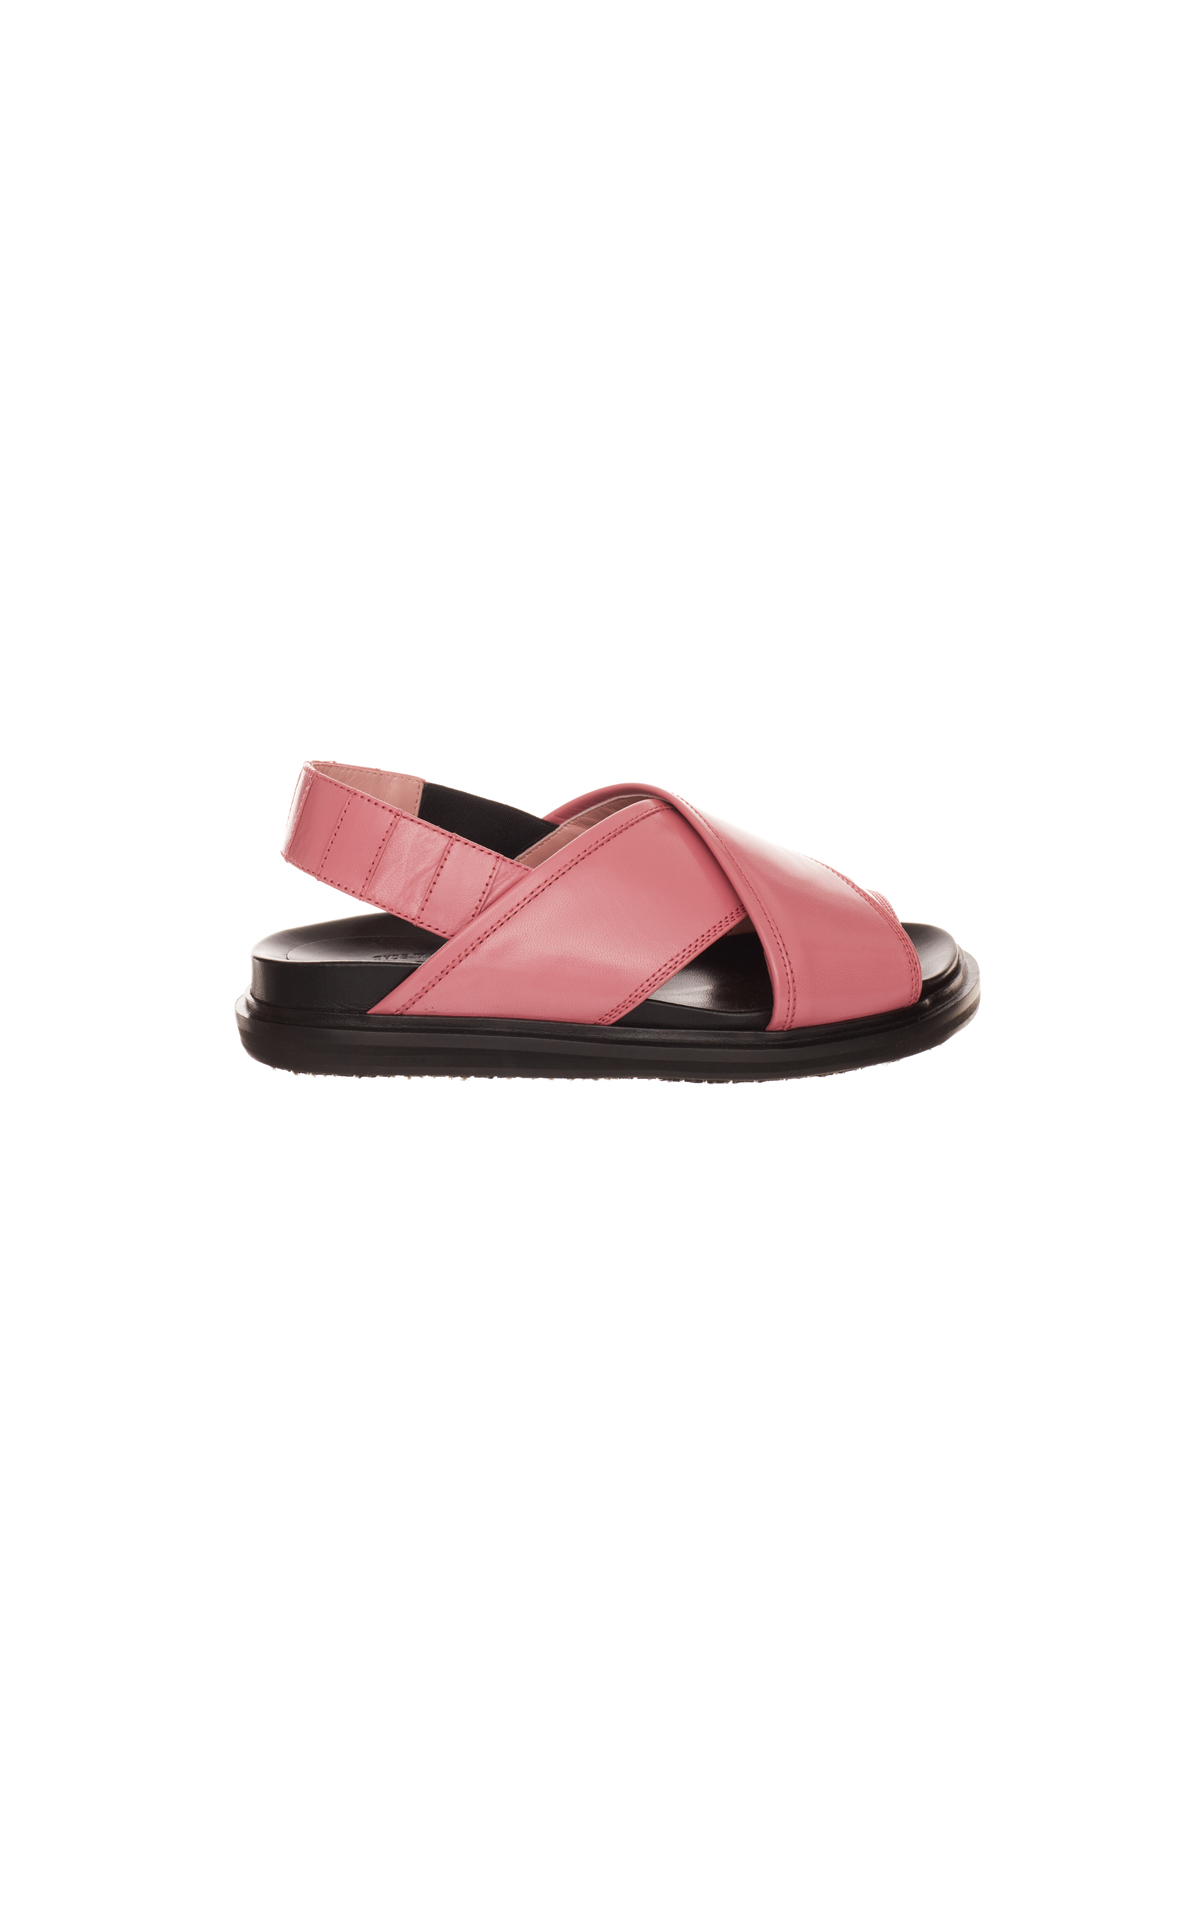 Marni Fussbett sandals from Bicester Village